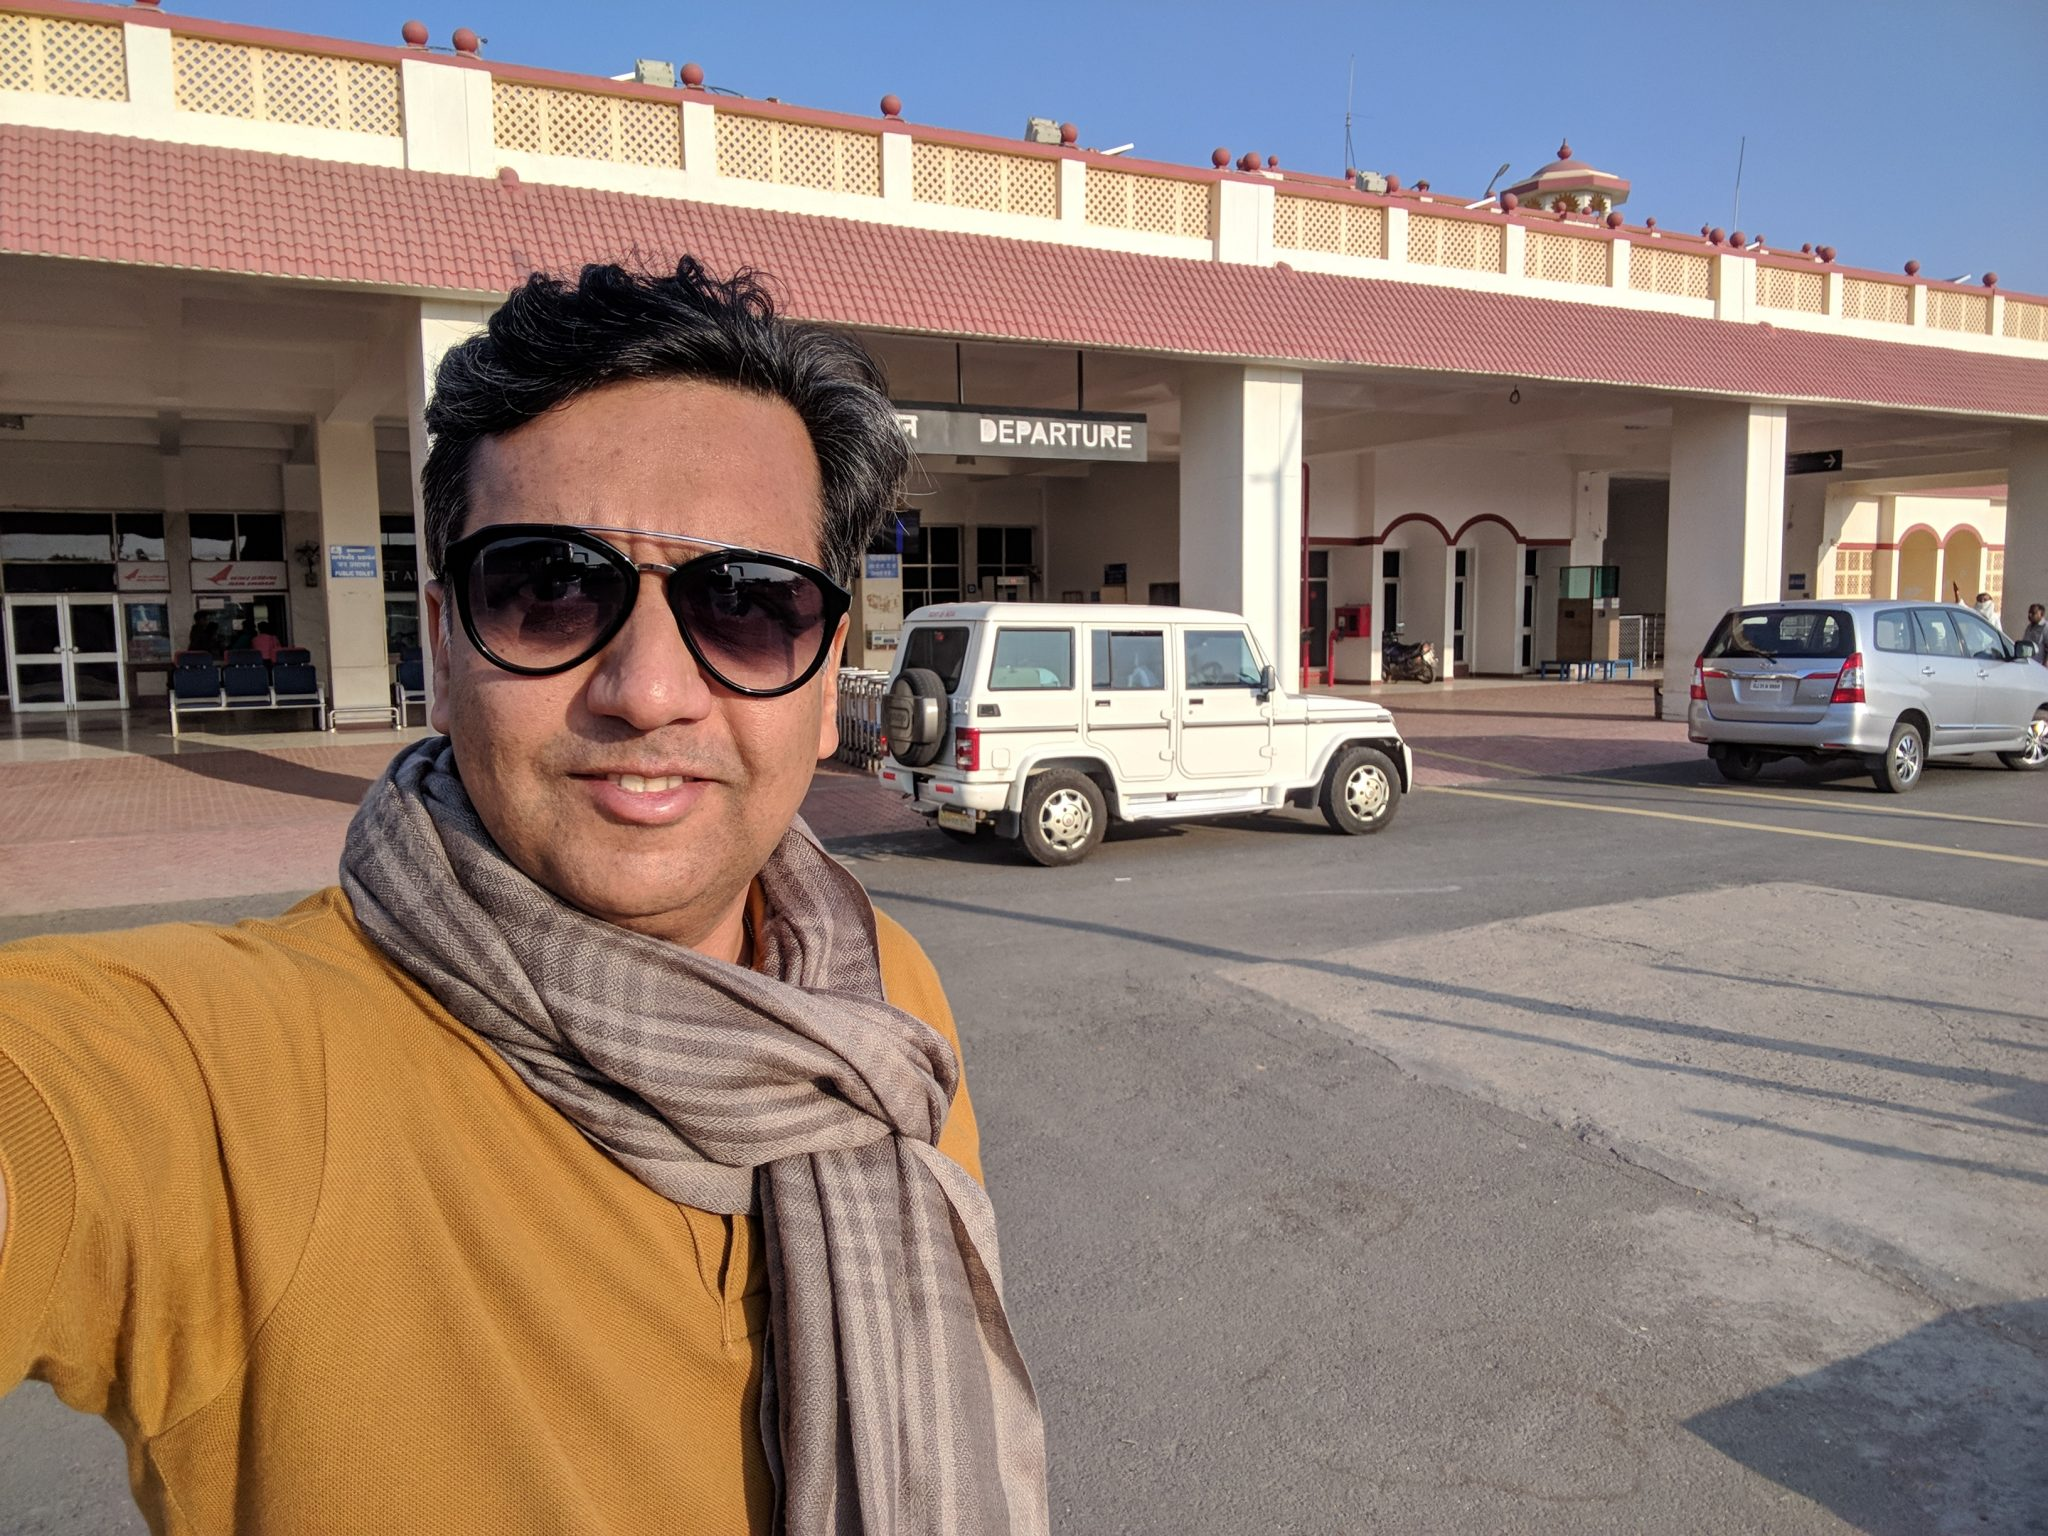 Mumbai Dentist at Bhuj Airport